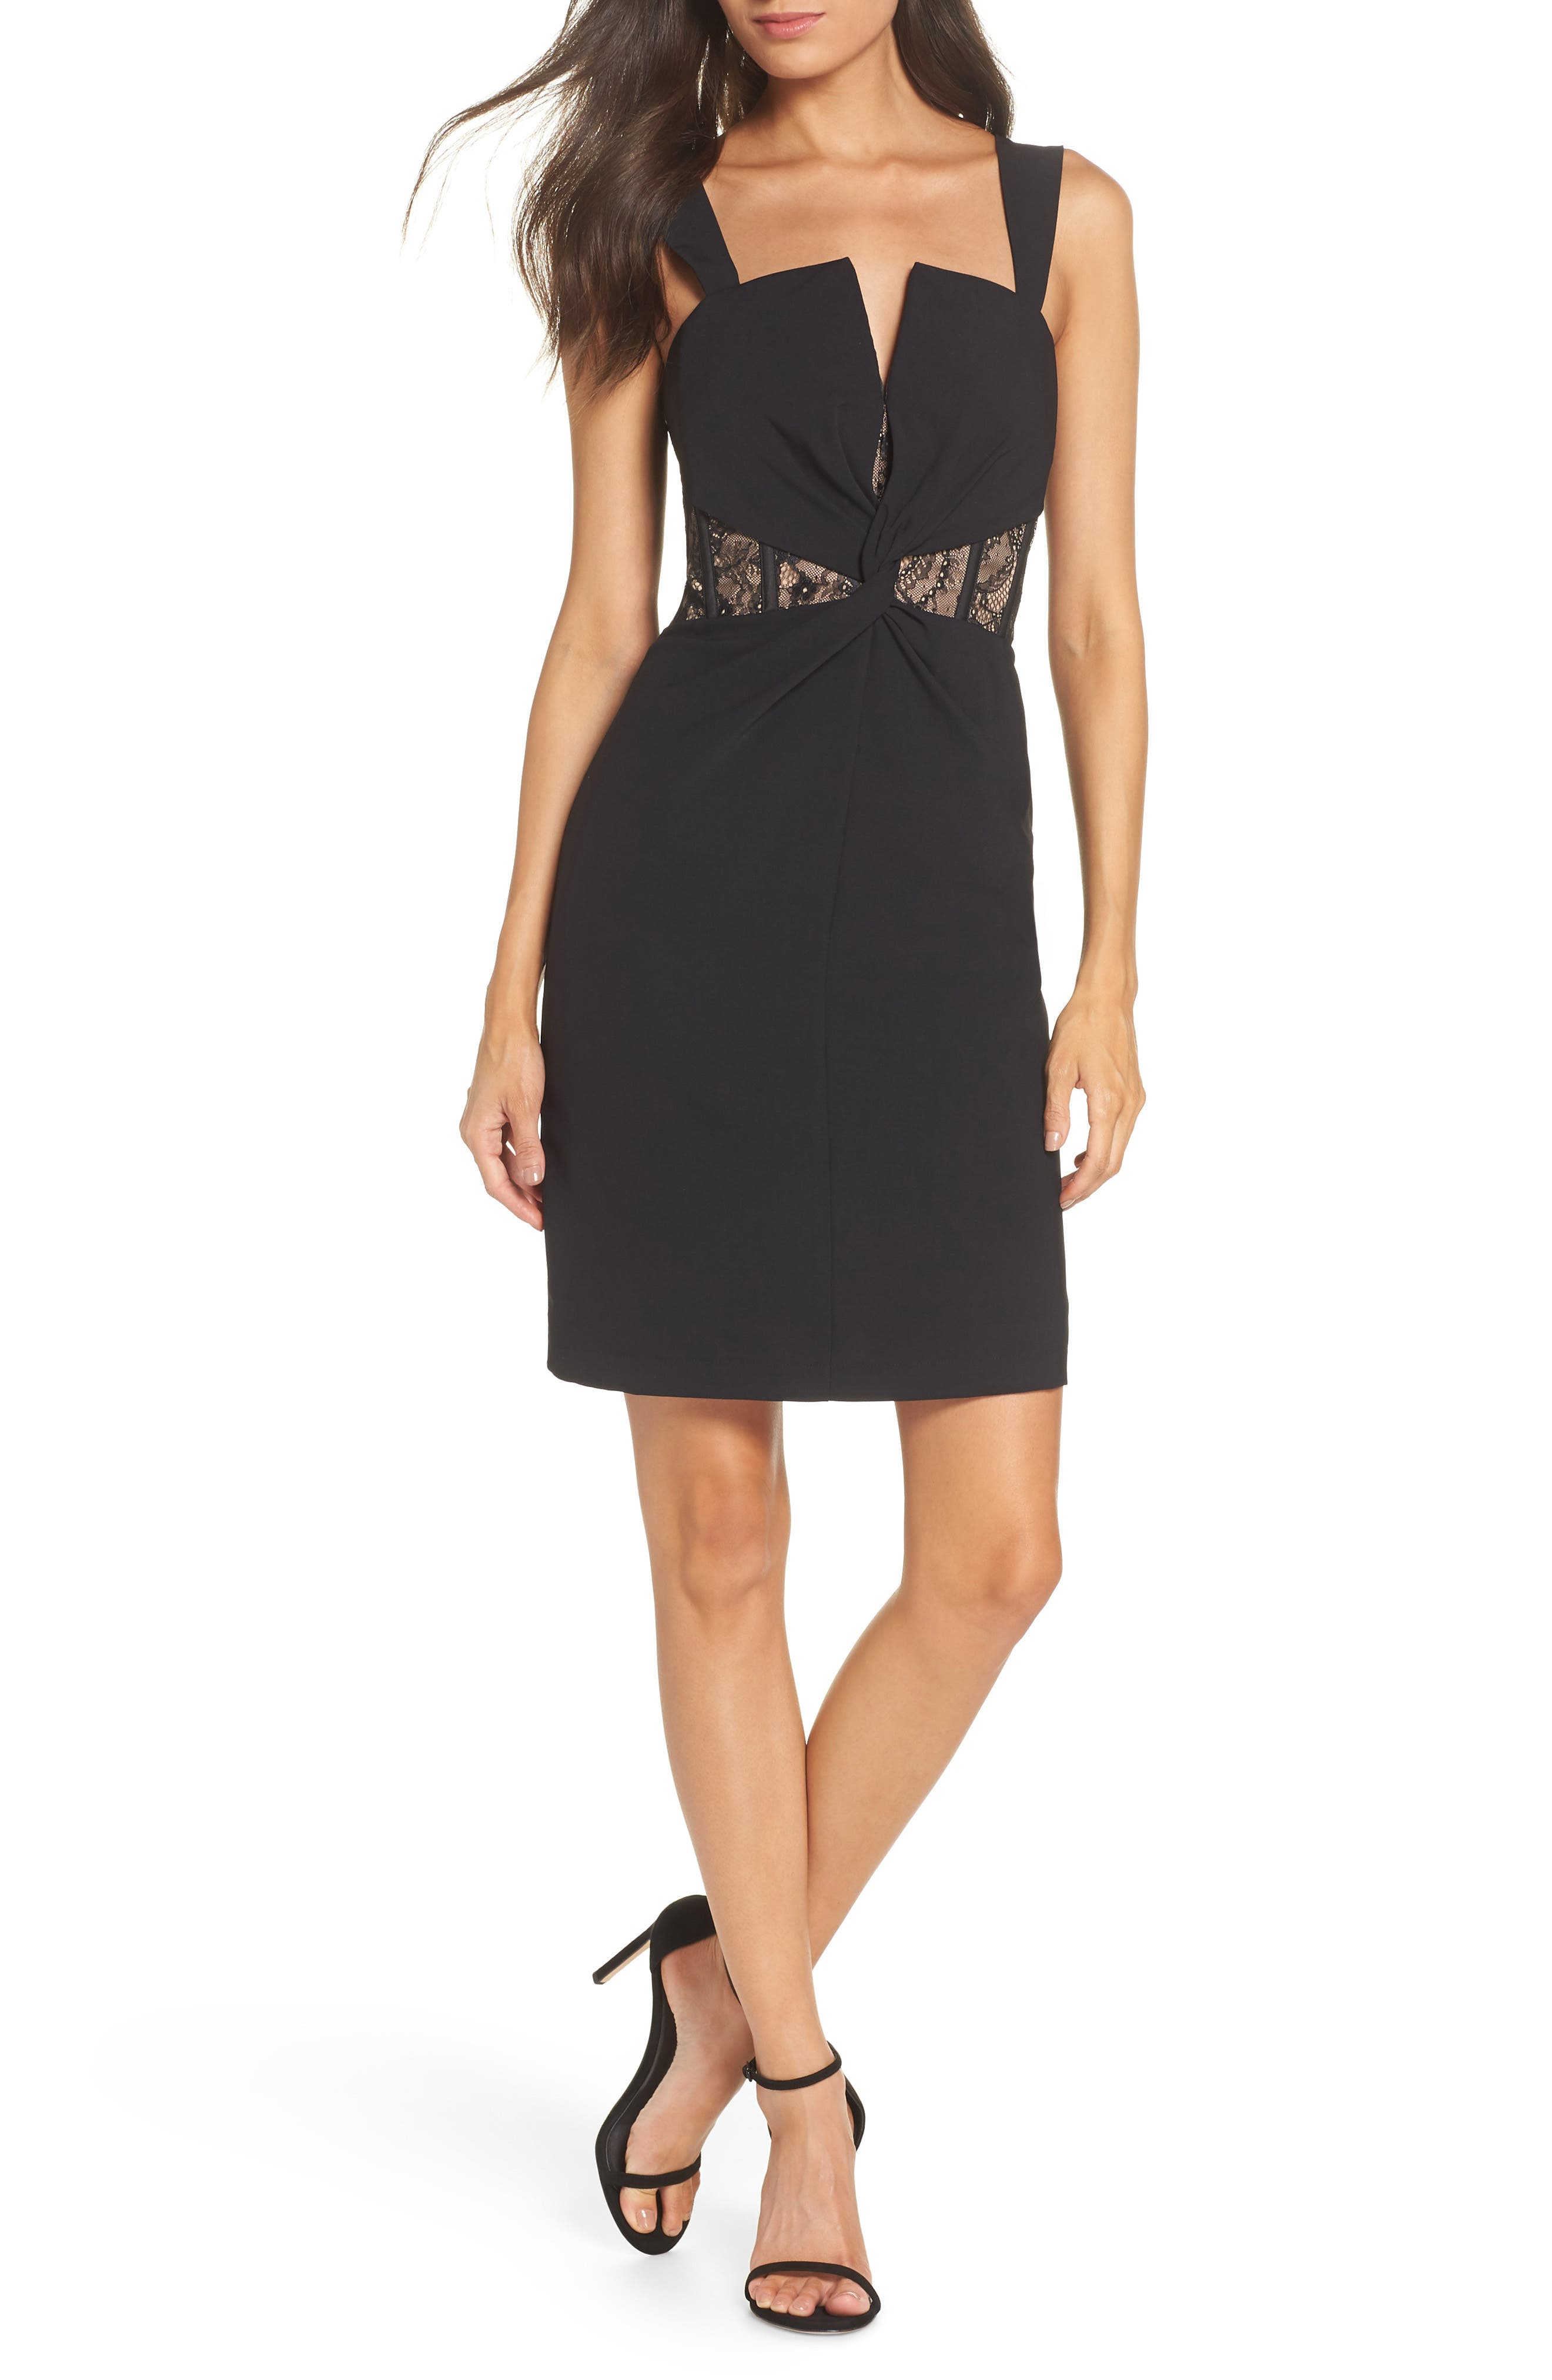 Harlyn Corset Detail & Lace Inset Cocktail Dress